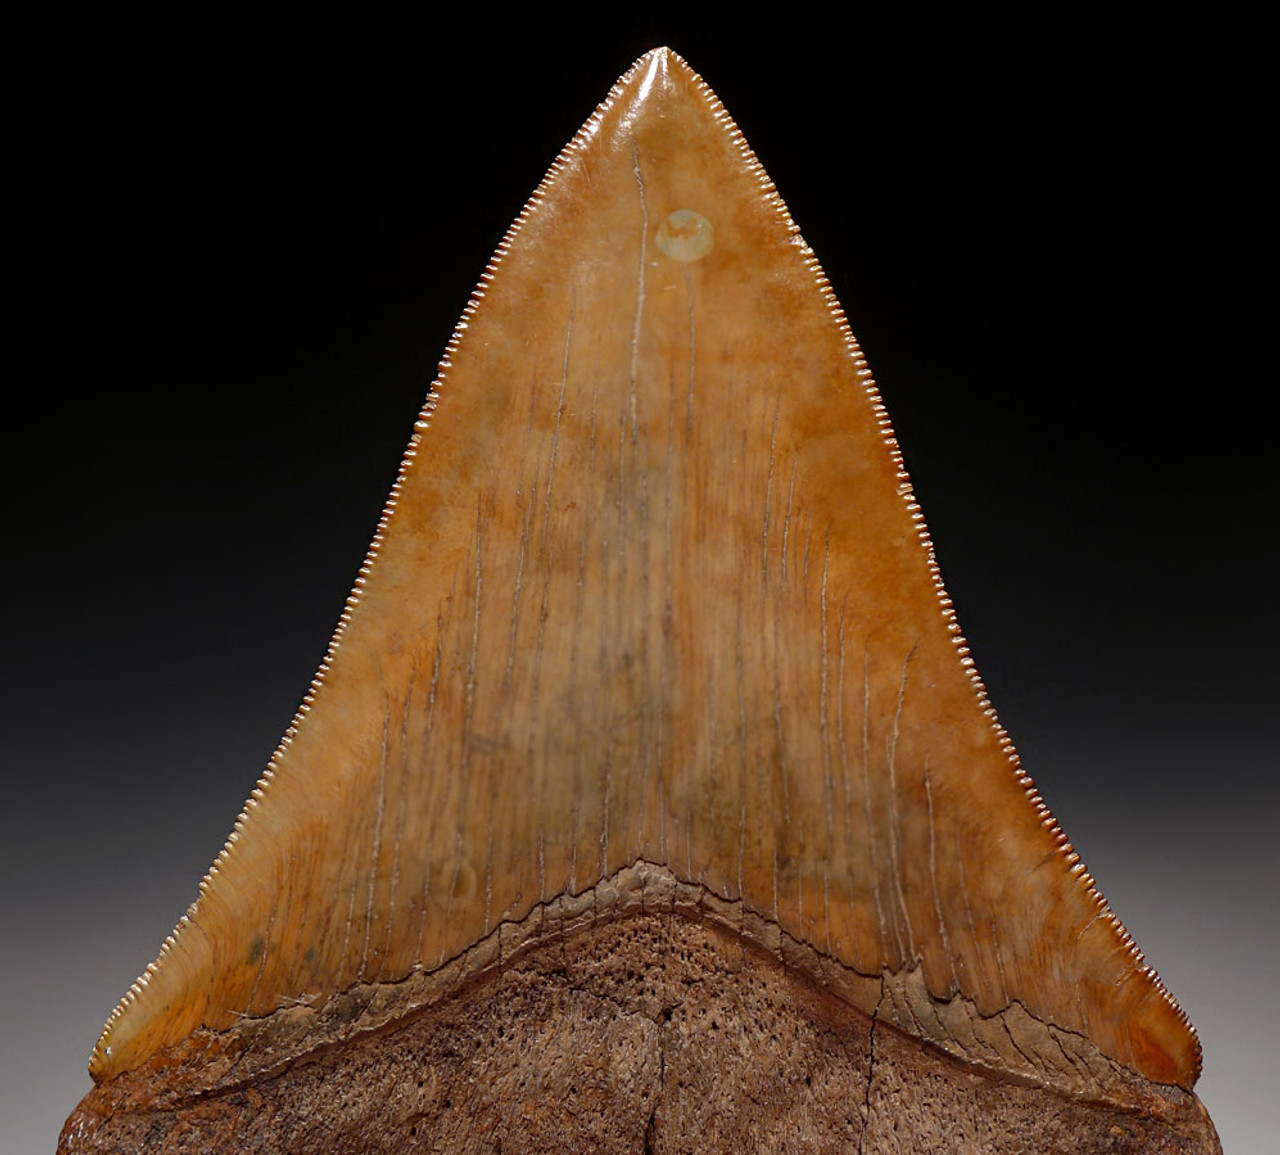 SH6-319 - 5.15 INCH MEGALODON SHARK TOOTH WITH GOLDEN AND COPPER RED ENAMEL